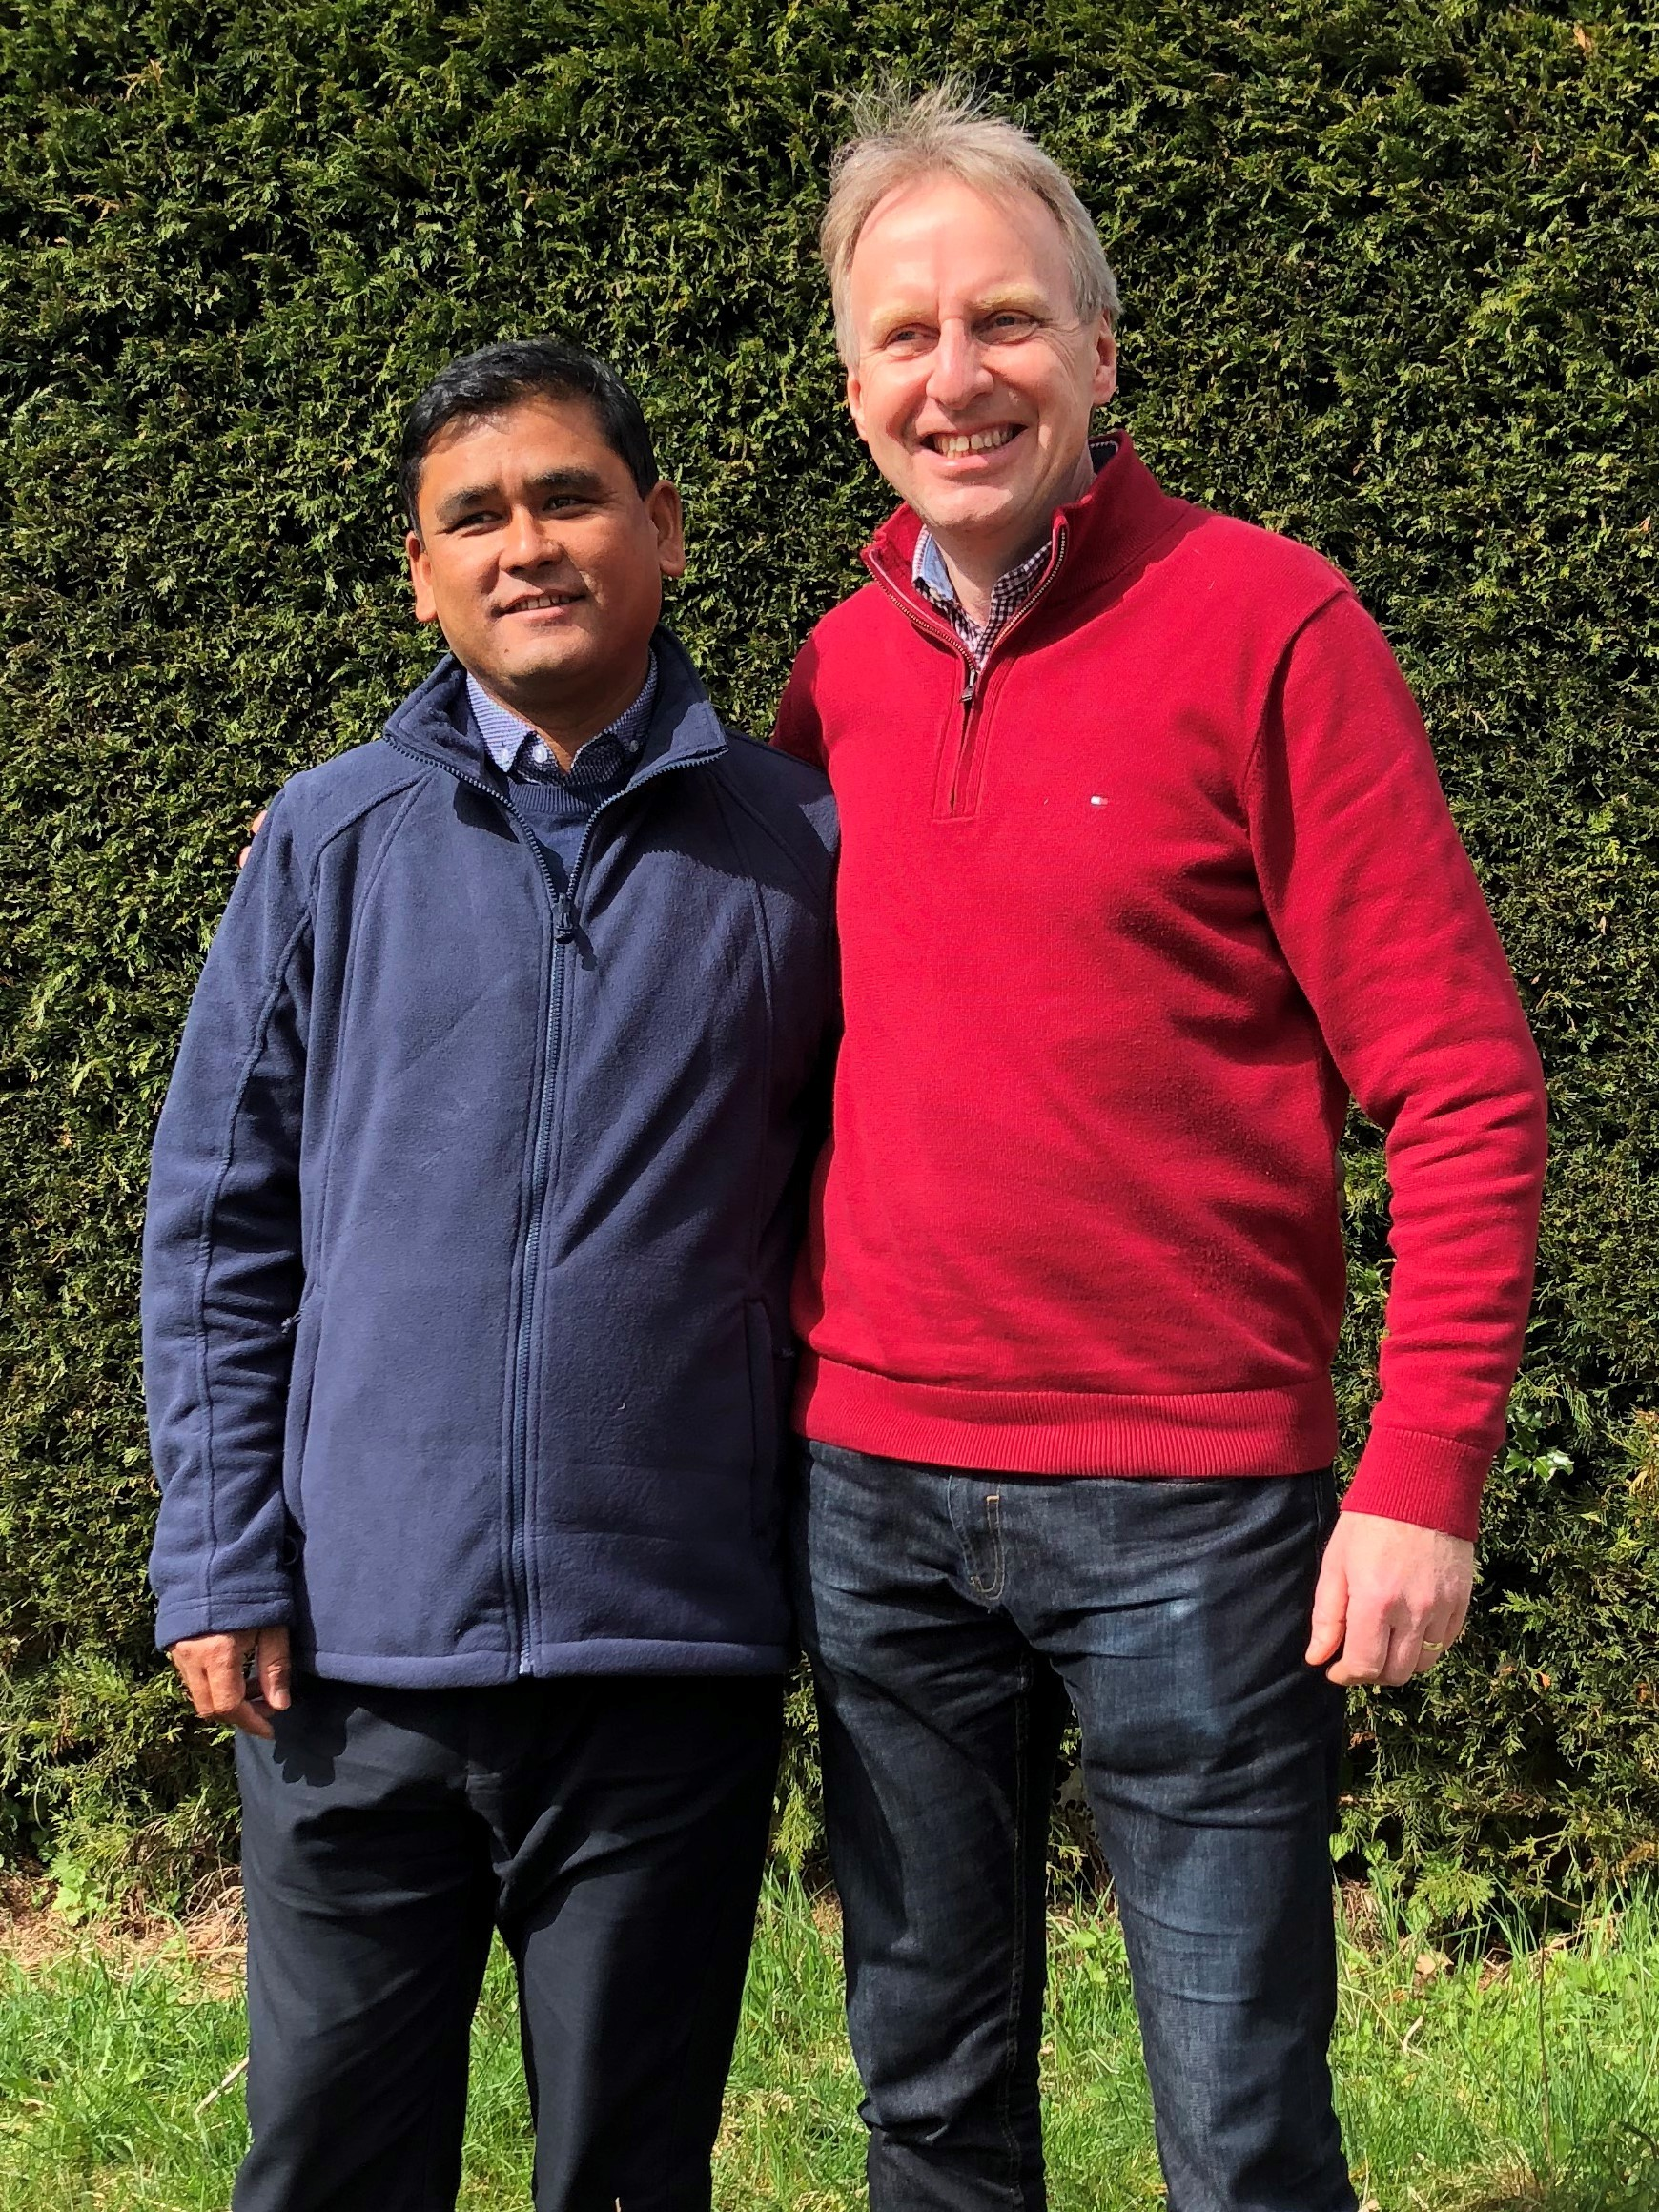 Paul Tate-Smith and Tilak, manager of Hope Centre, Katmandu, which works with New Futures Nepal, one of the charities Paul is running for